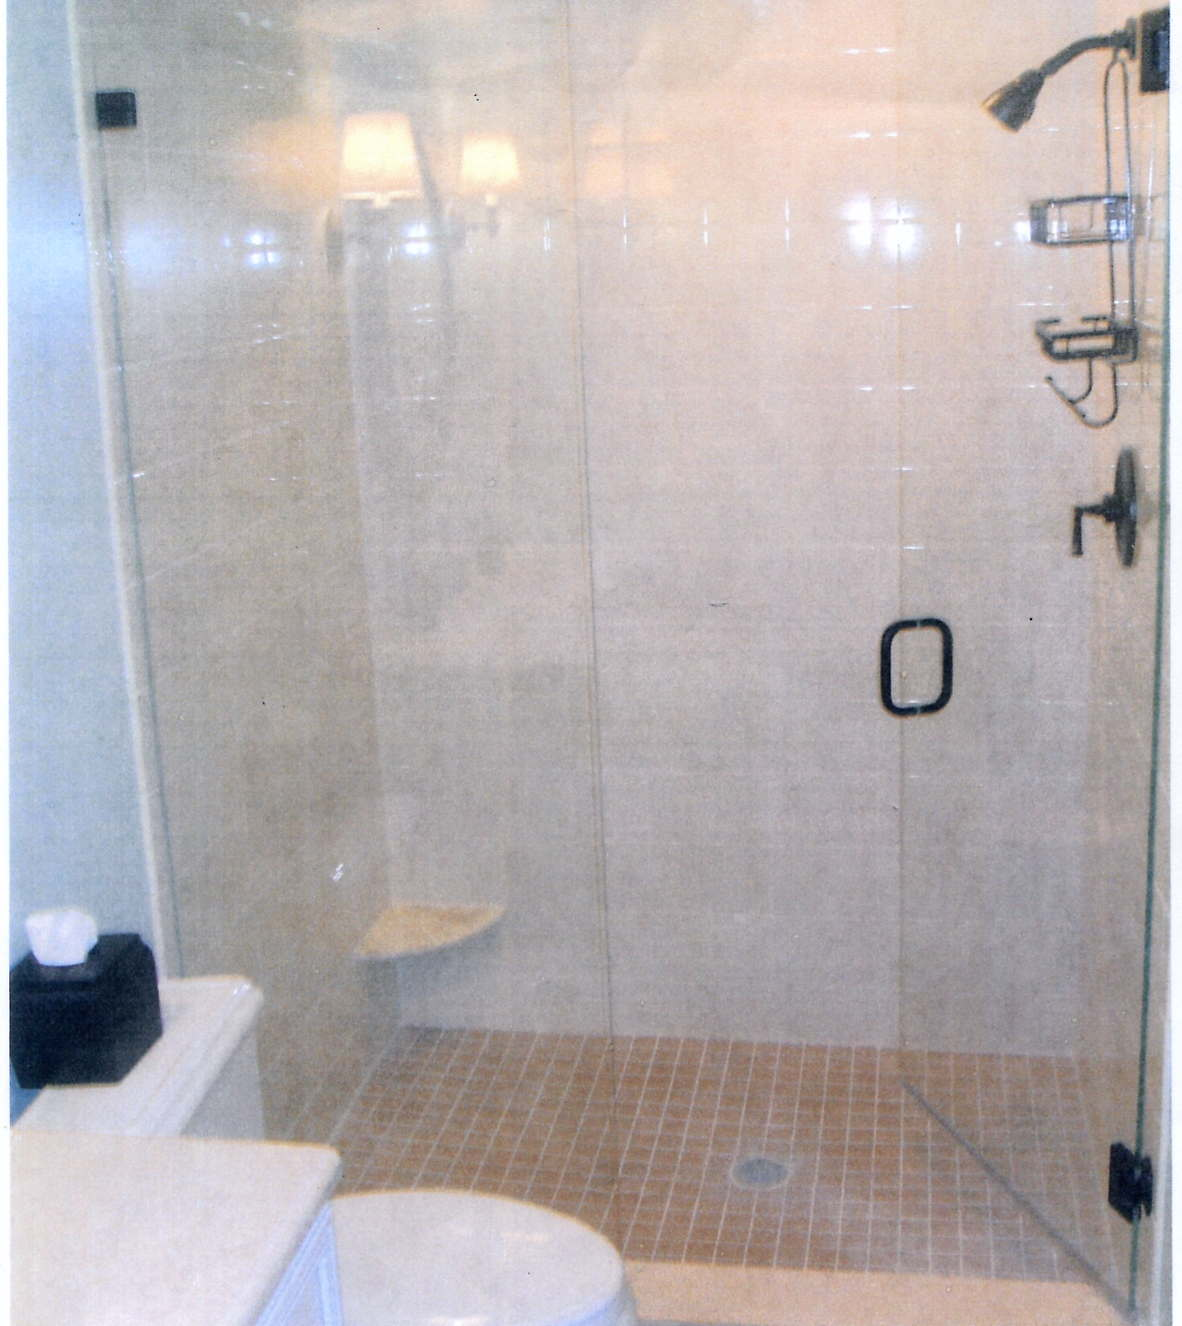 enclosures stalls neo frameless bathtub shower angle doors bathroom glass sliding seamless